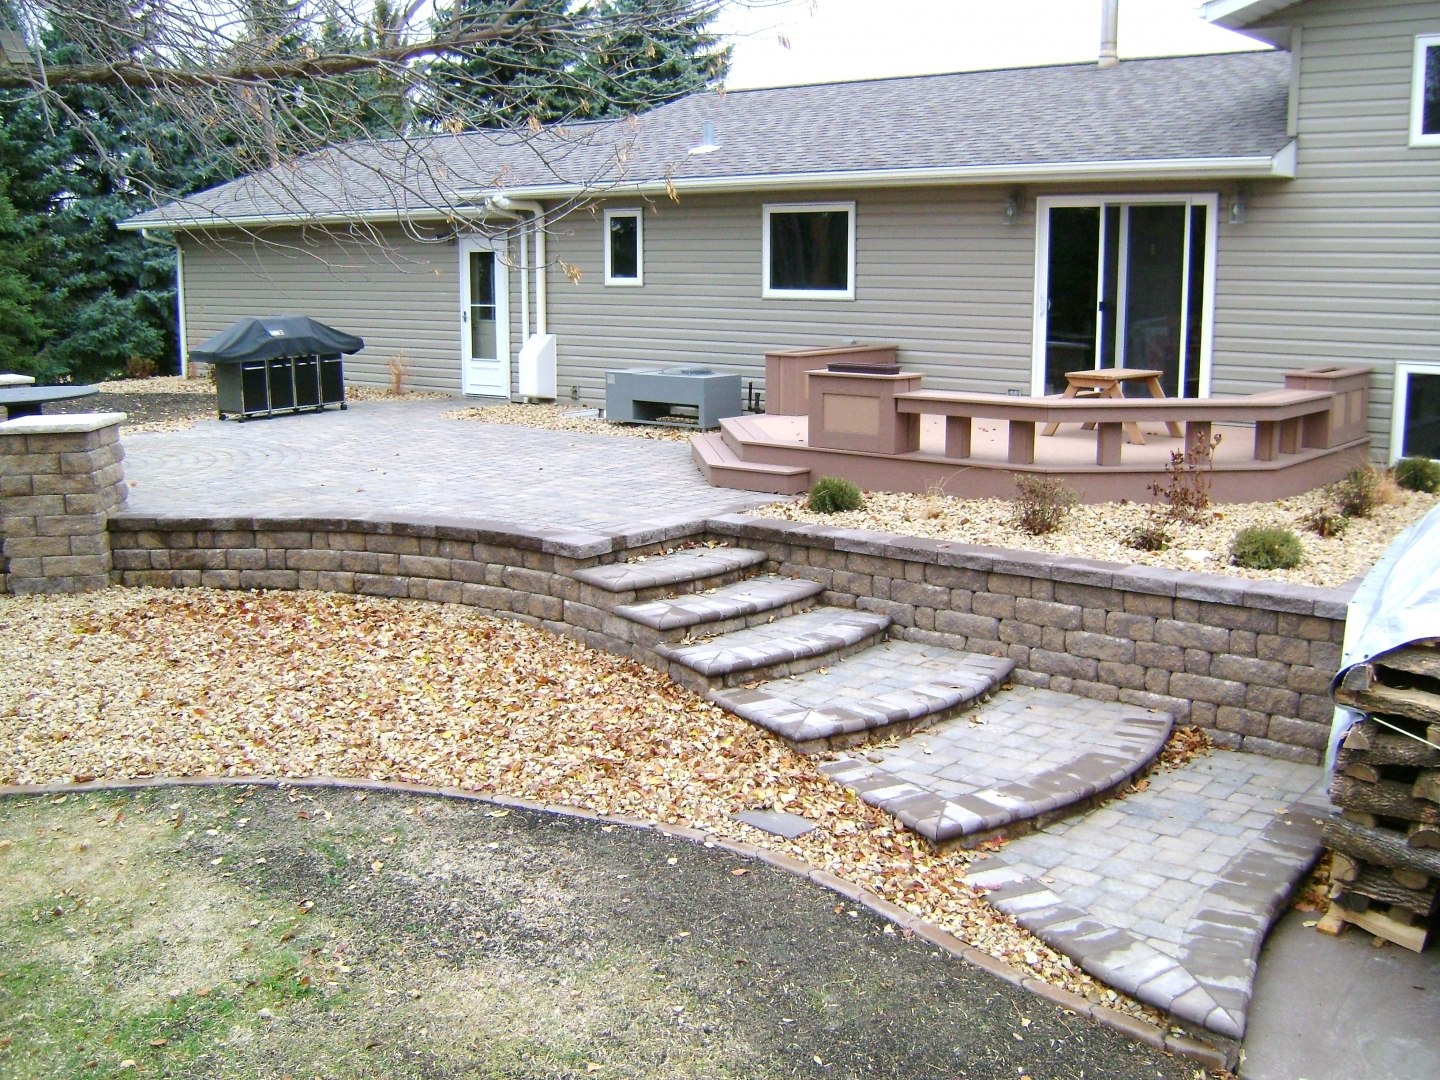 Raised Paver Patio With Retaining Walls Stairs Deck And Seating   Patio With Stairs From House   Concrete Slab   Simple   Back Yard   Composite Decking   Main Entrance Stamped Concrete Front